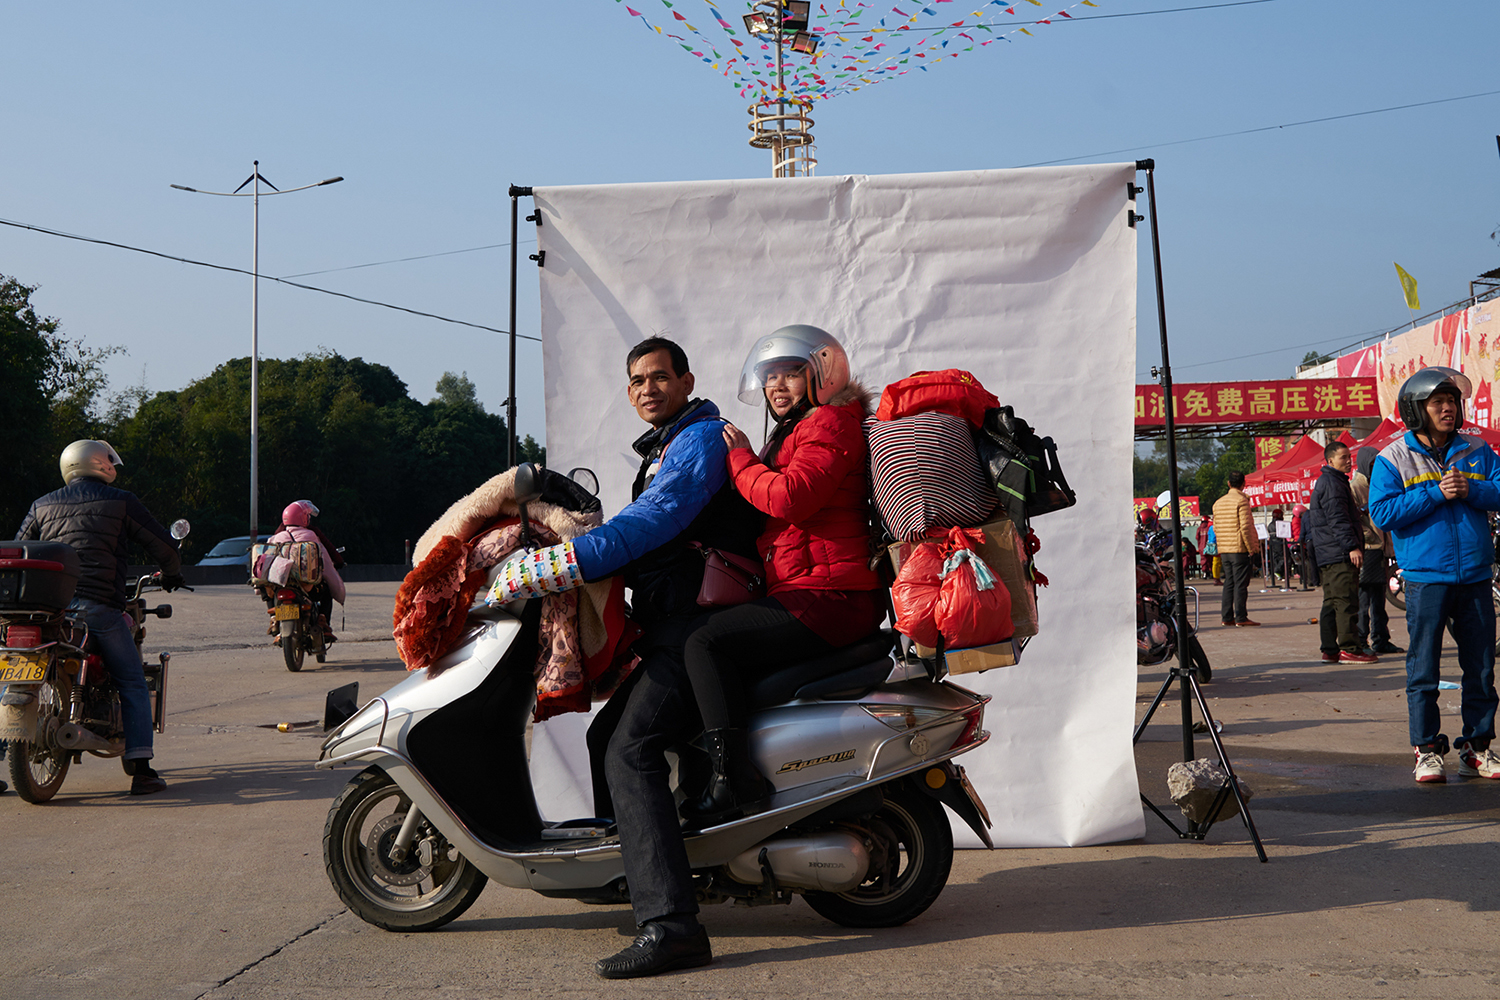 January 22, six days before the Lunar New Year, a migrant couple rides a motorcycle from Zhongshan, Guangdong province to Pingnan in Guangxi, to go home for the holiday. The trip is 245 miles. Although biking is far from the safest travel option, it's cheap and a good way to avoid overcrowded trains and buses. (Liang Yingfei/Caixin)